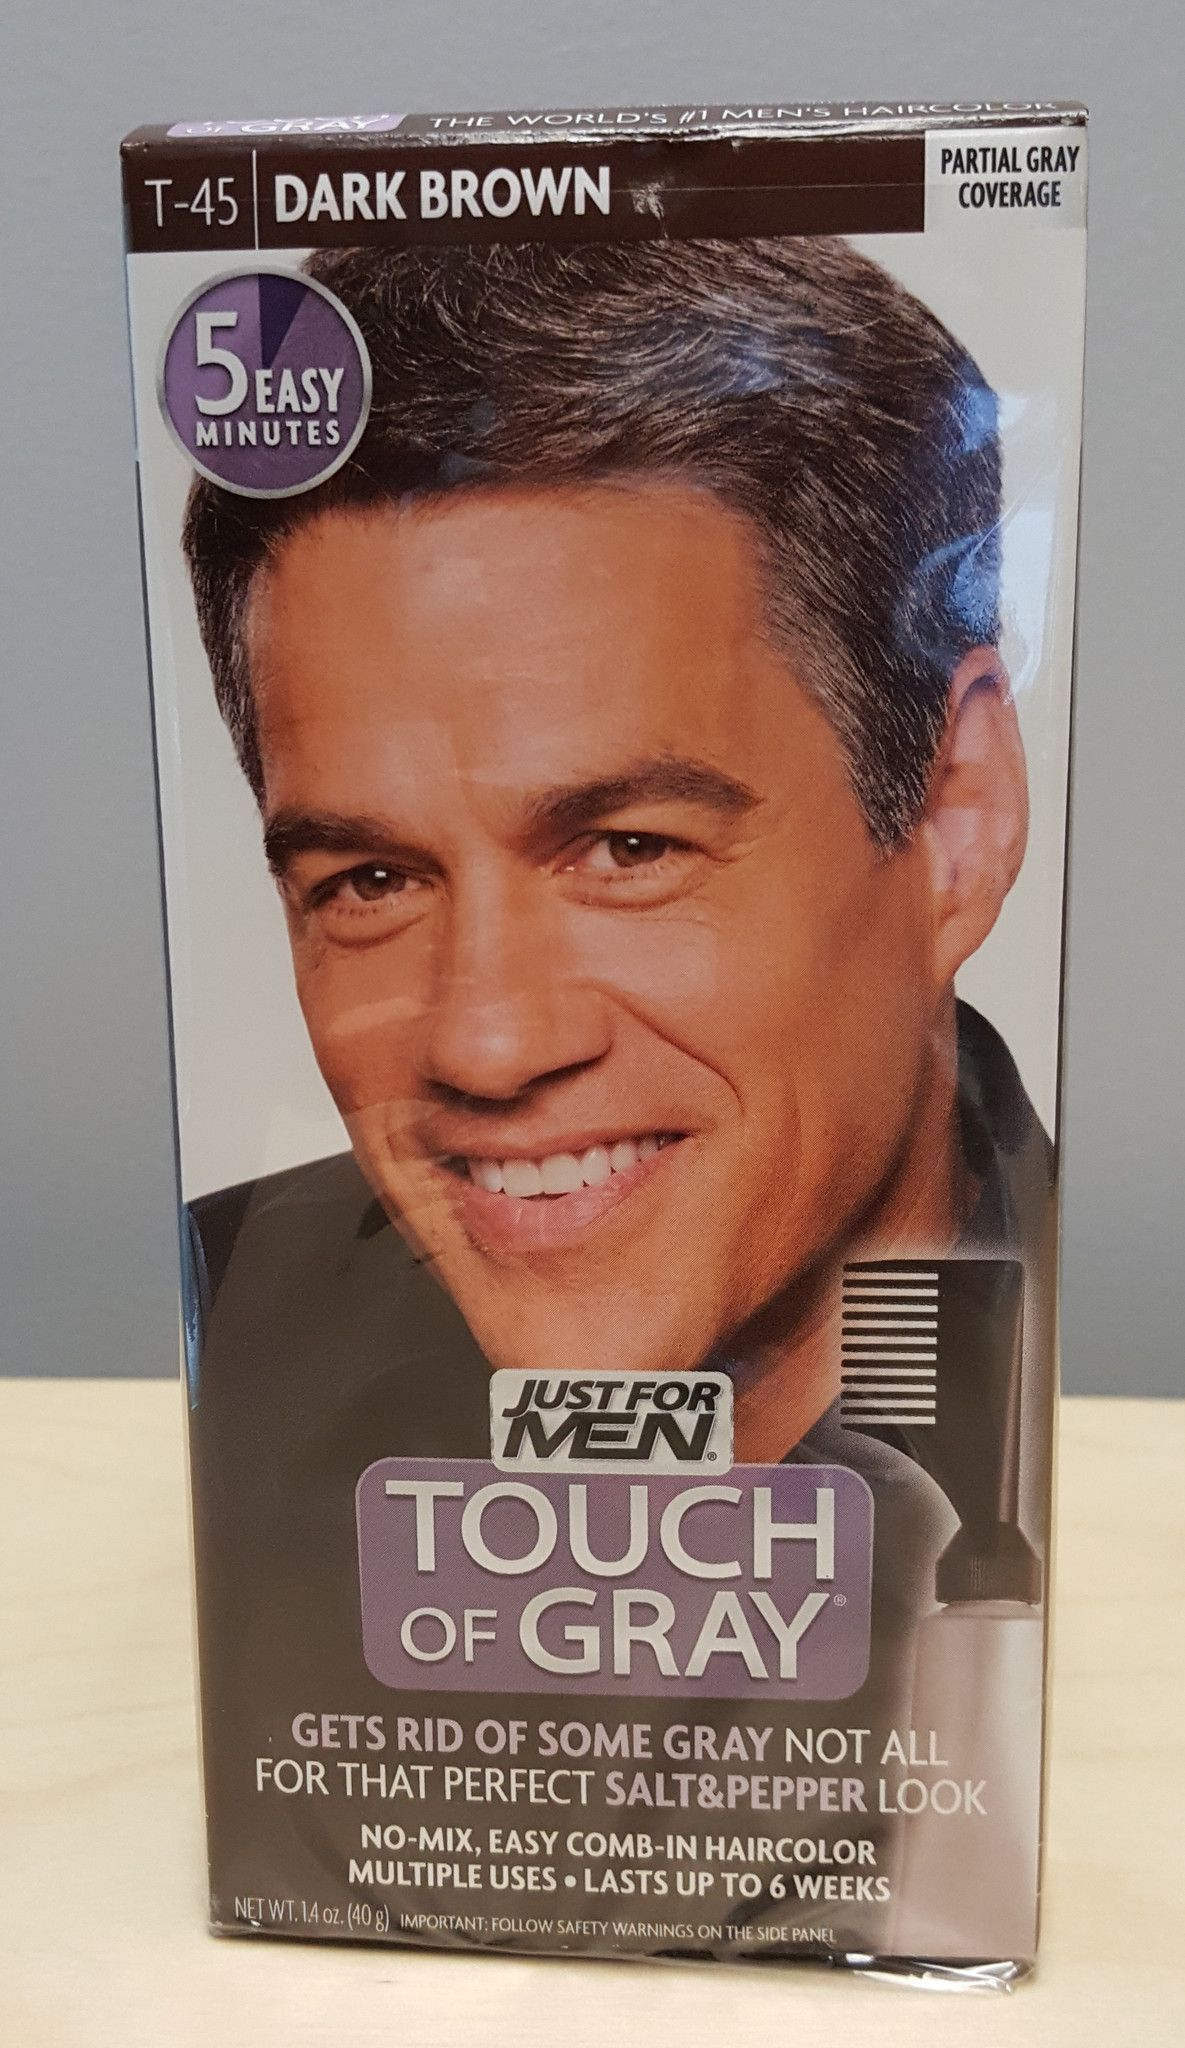 Just For Men Touch Of Gray Dark Brown 1 Lication 3 Pack